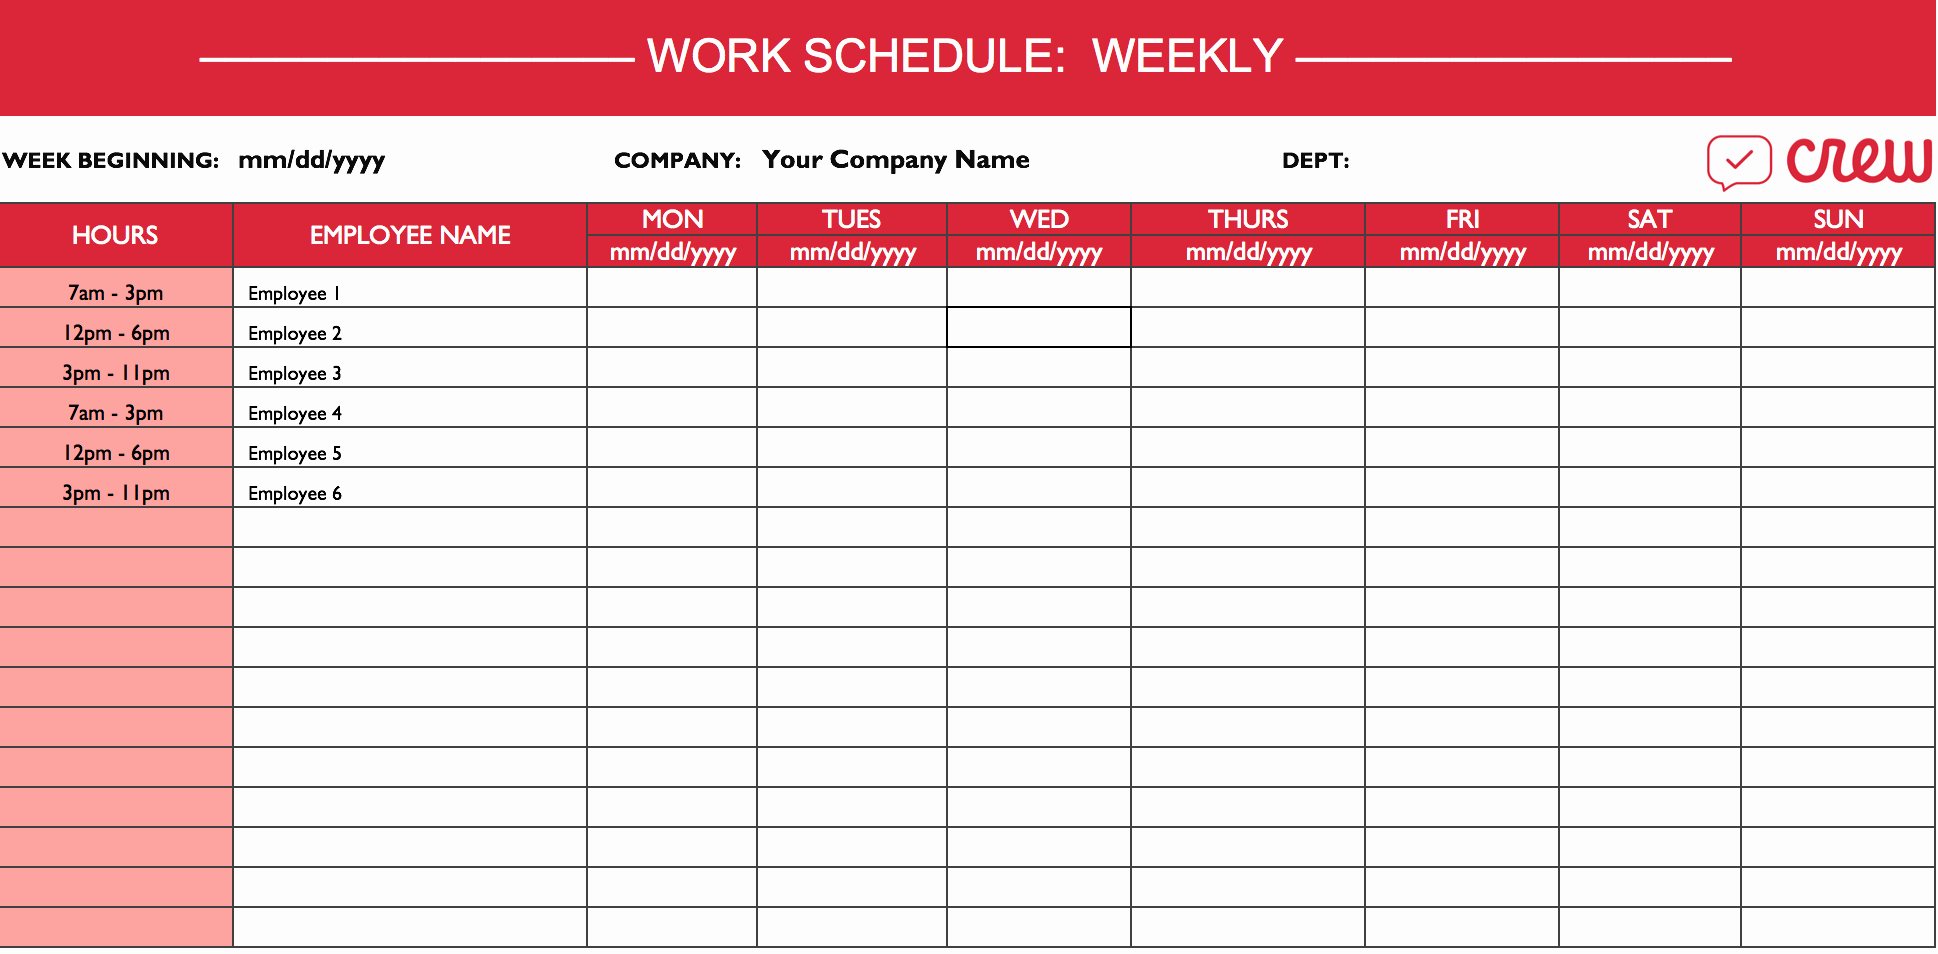 Monthly Staff Schedule Template Lovely Weekly Work Schedule Template I Crew